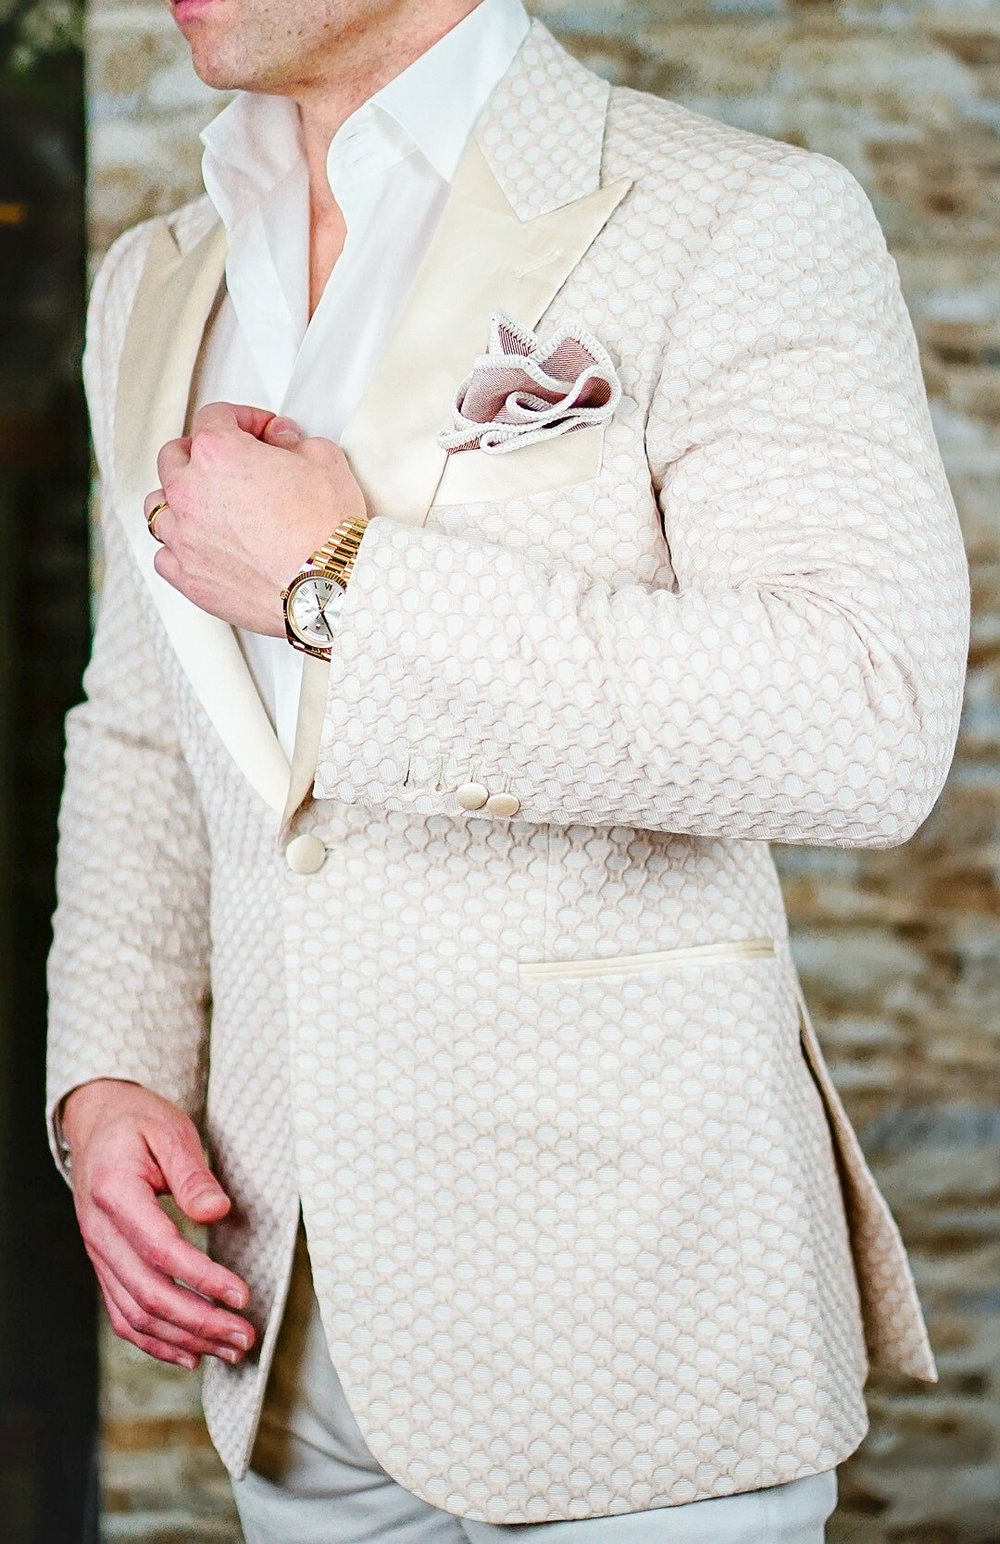 His-Attire-Wedding-Jacket-White